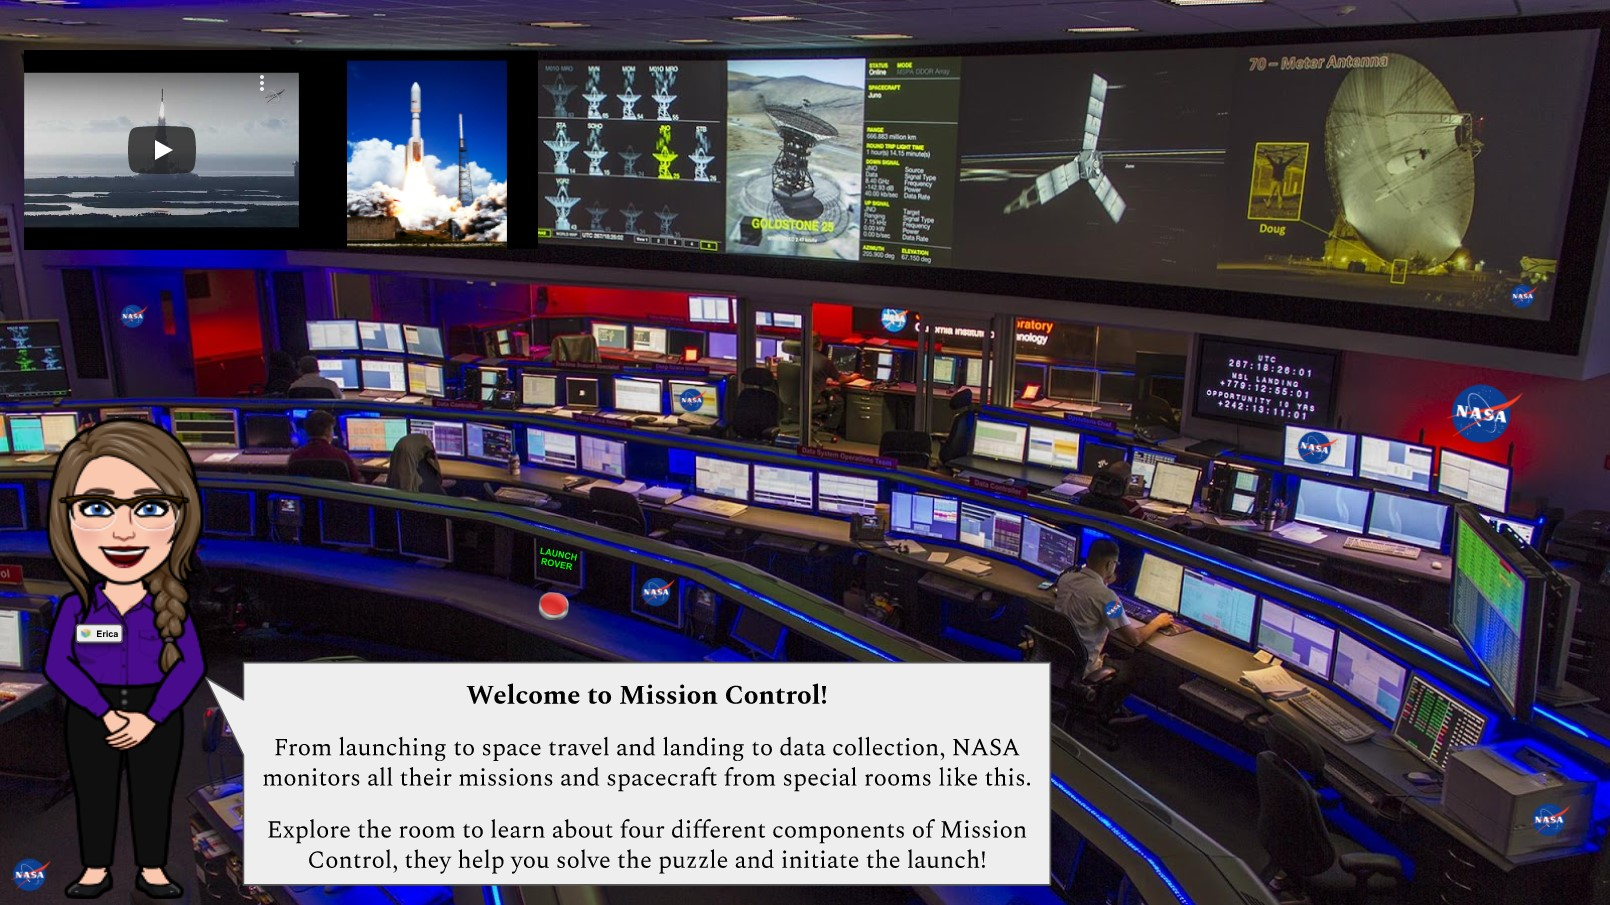 https://discoverycubeconnect.org/wp-content/uploads/2021/02/Mssion-to-Mars-2.jpg